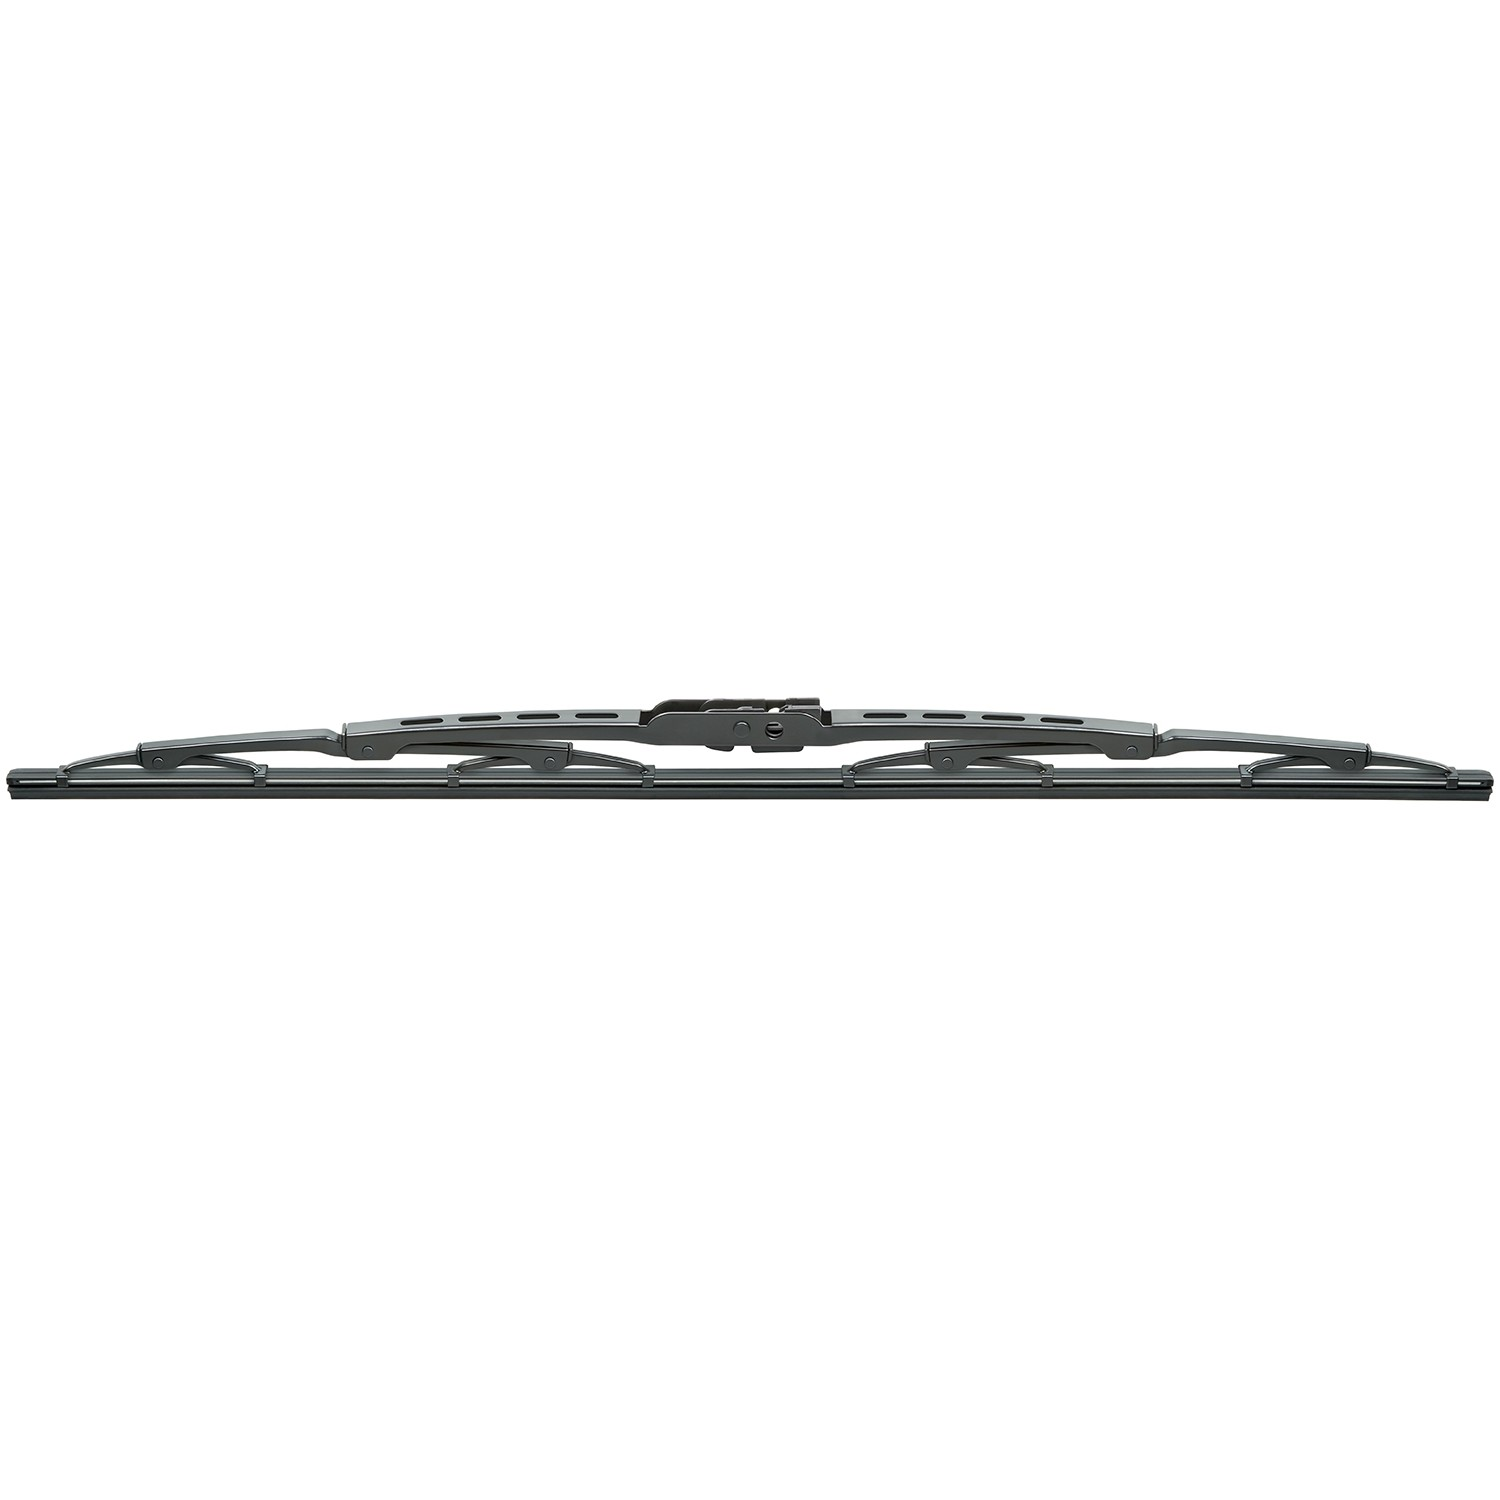 TRICO - Windshield Wiper Blade - TRI 30-210